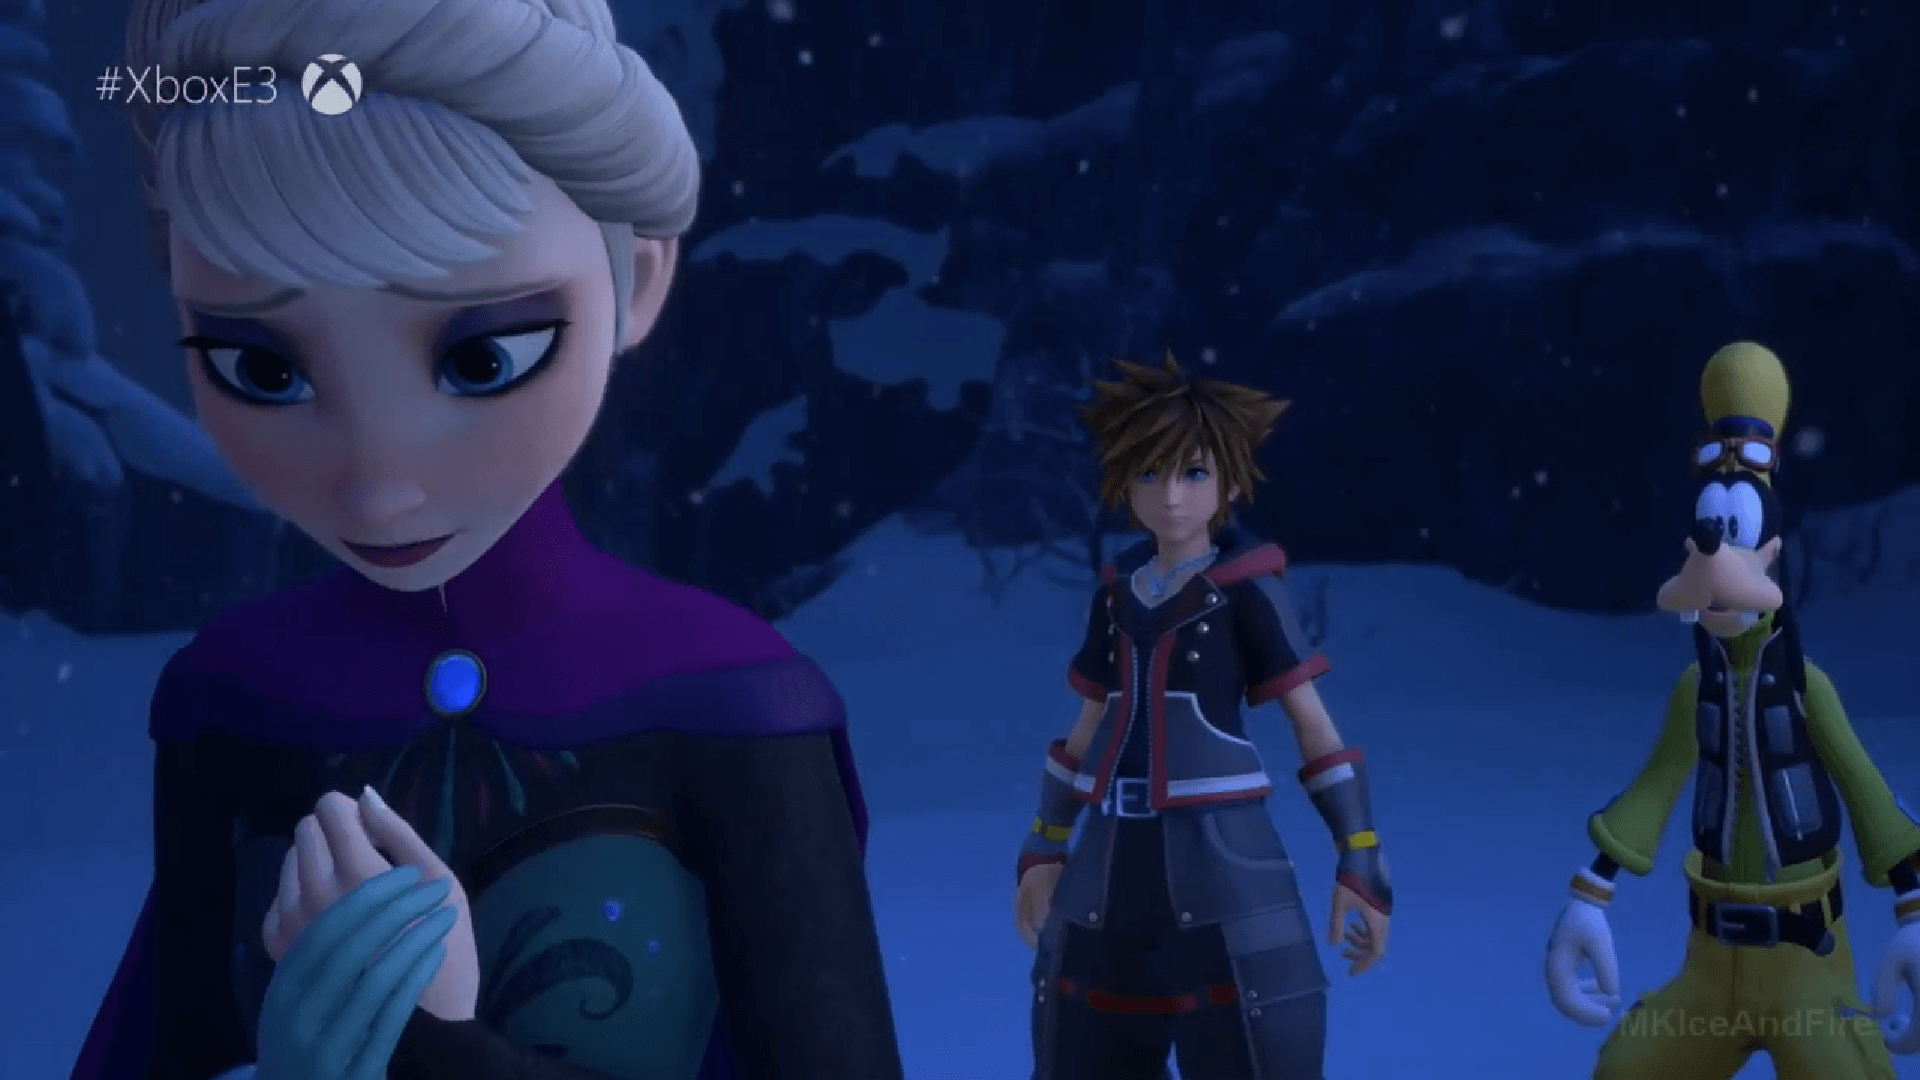 E3 2018: Kingdom Hearts 3 New Trailer Debut